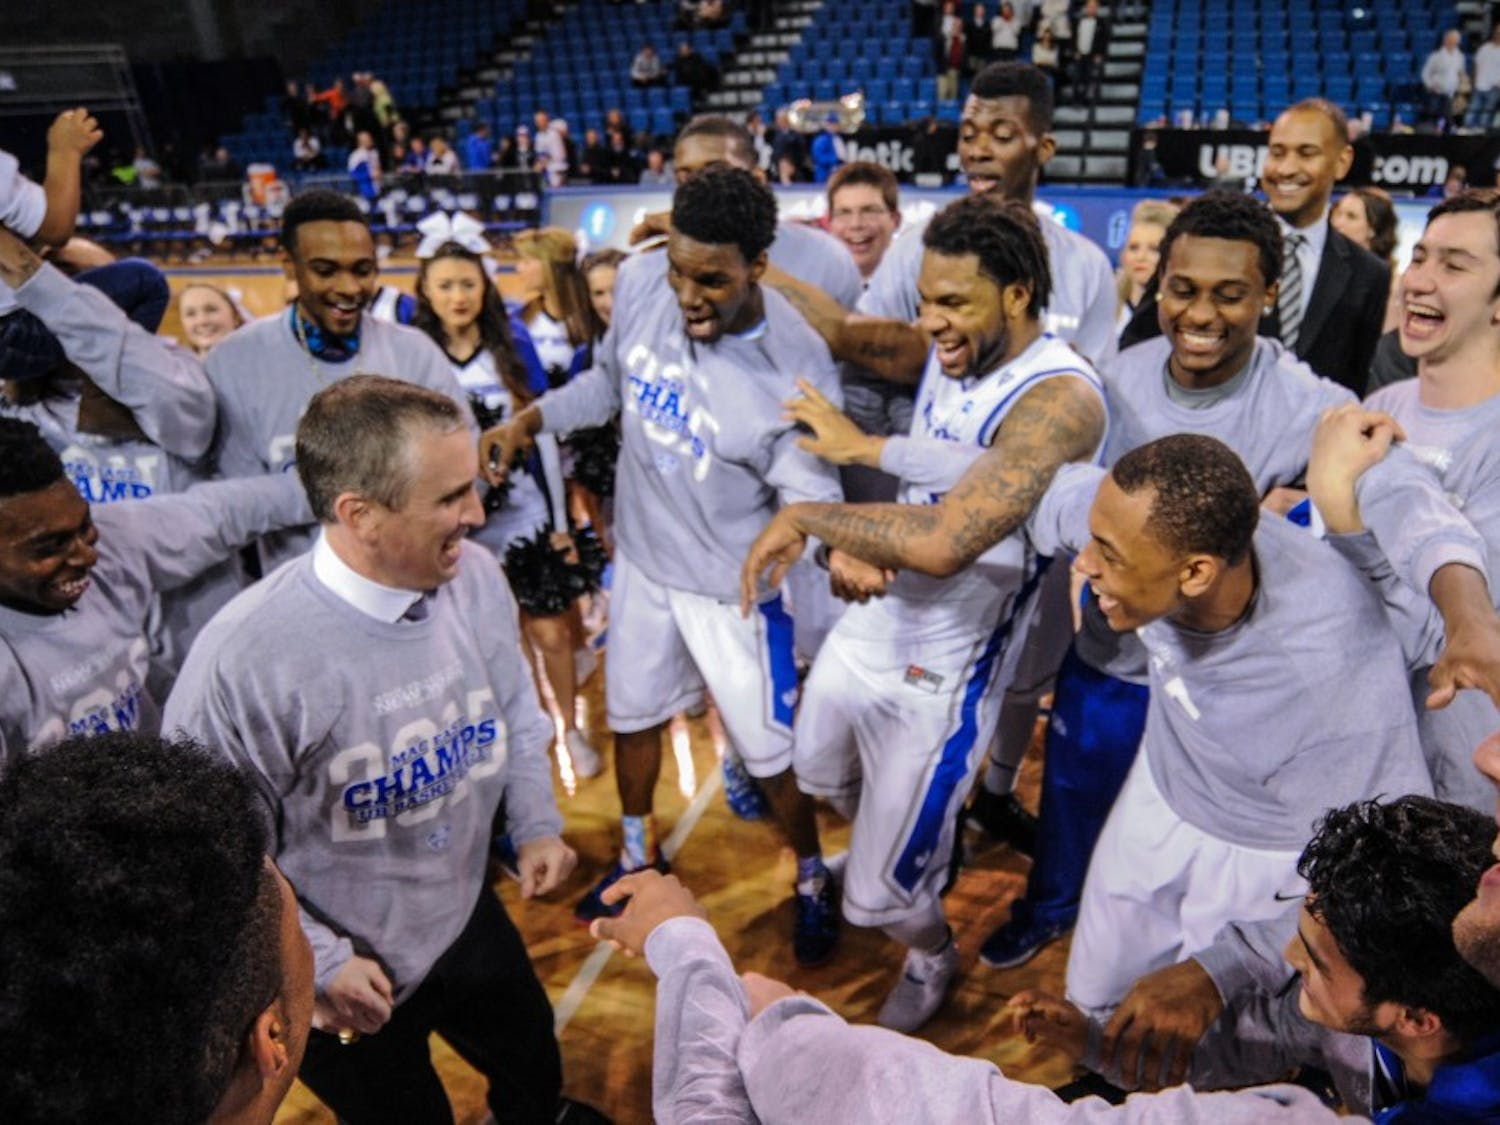 The Bulls (21-9, 12-6 MAC) defeated Bowling Green (19-10, 11-7 MAC) 77-75 at a sold-out Alumni Arena on Friday night to clinch the MAC East division and a share of the regular season championship. The victory solidified a triple-bye in next week's MAC Tournament in Cleveland, Ohio as the team closed out the regular season on a six-game winning streak.